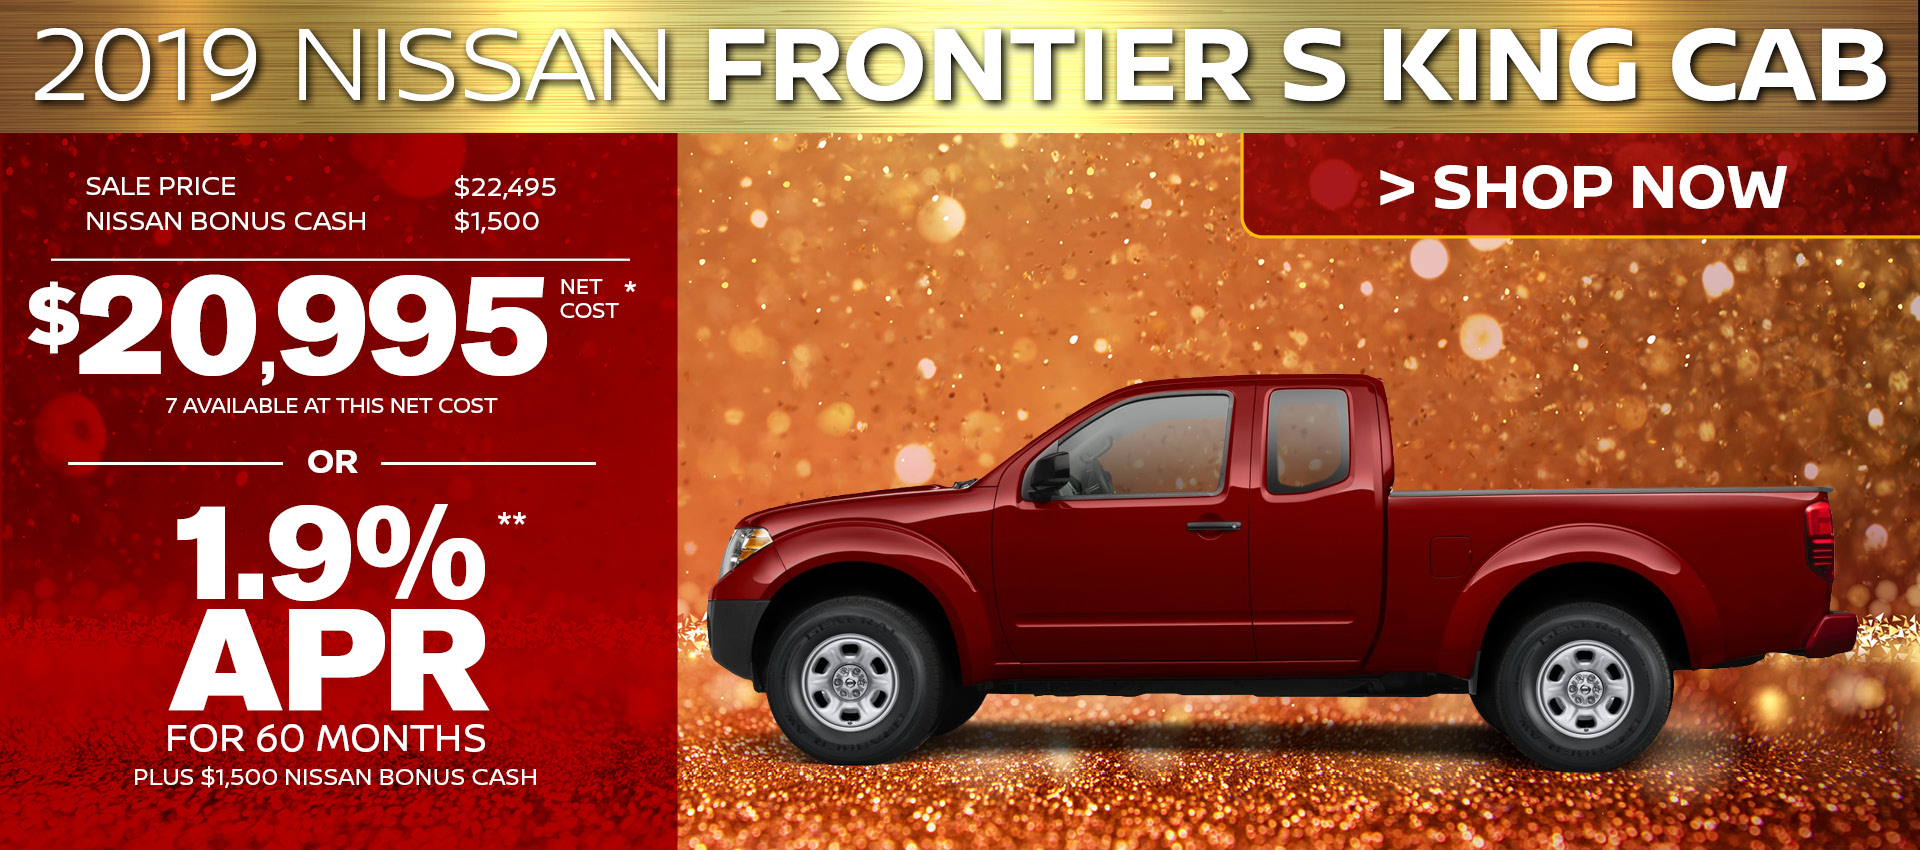 Mossy Nissan - Frontier King HP